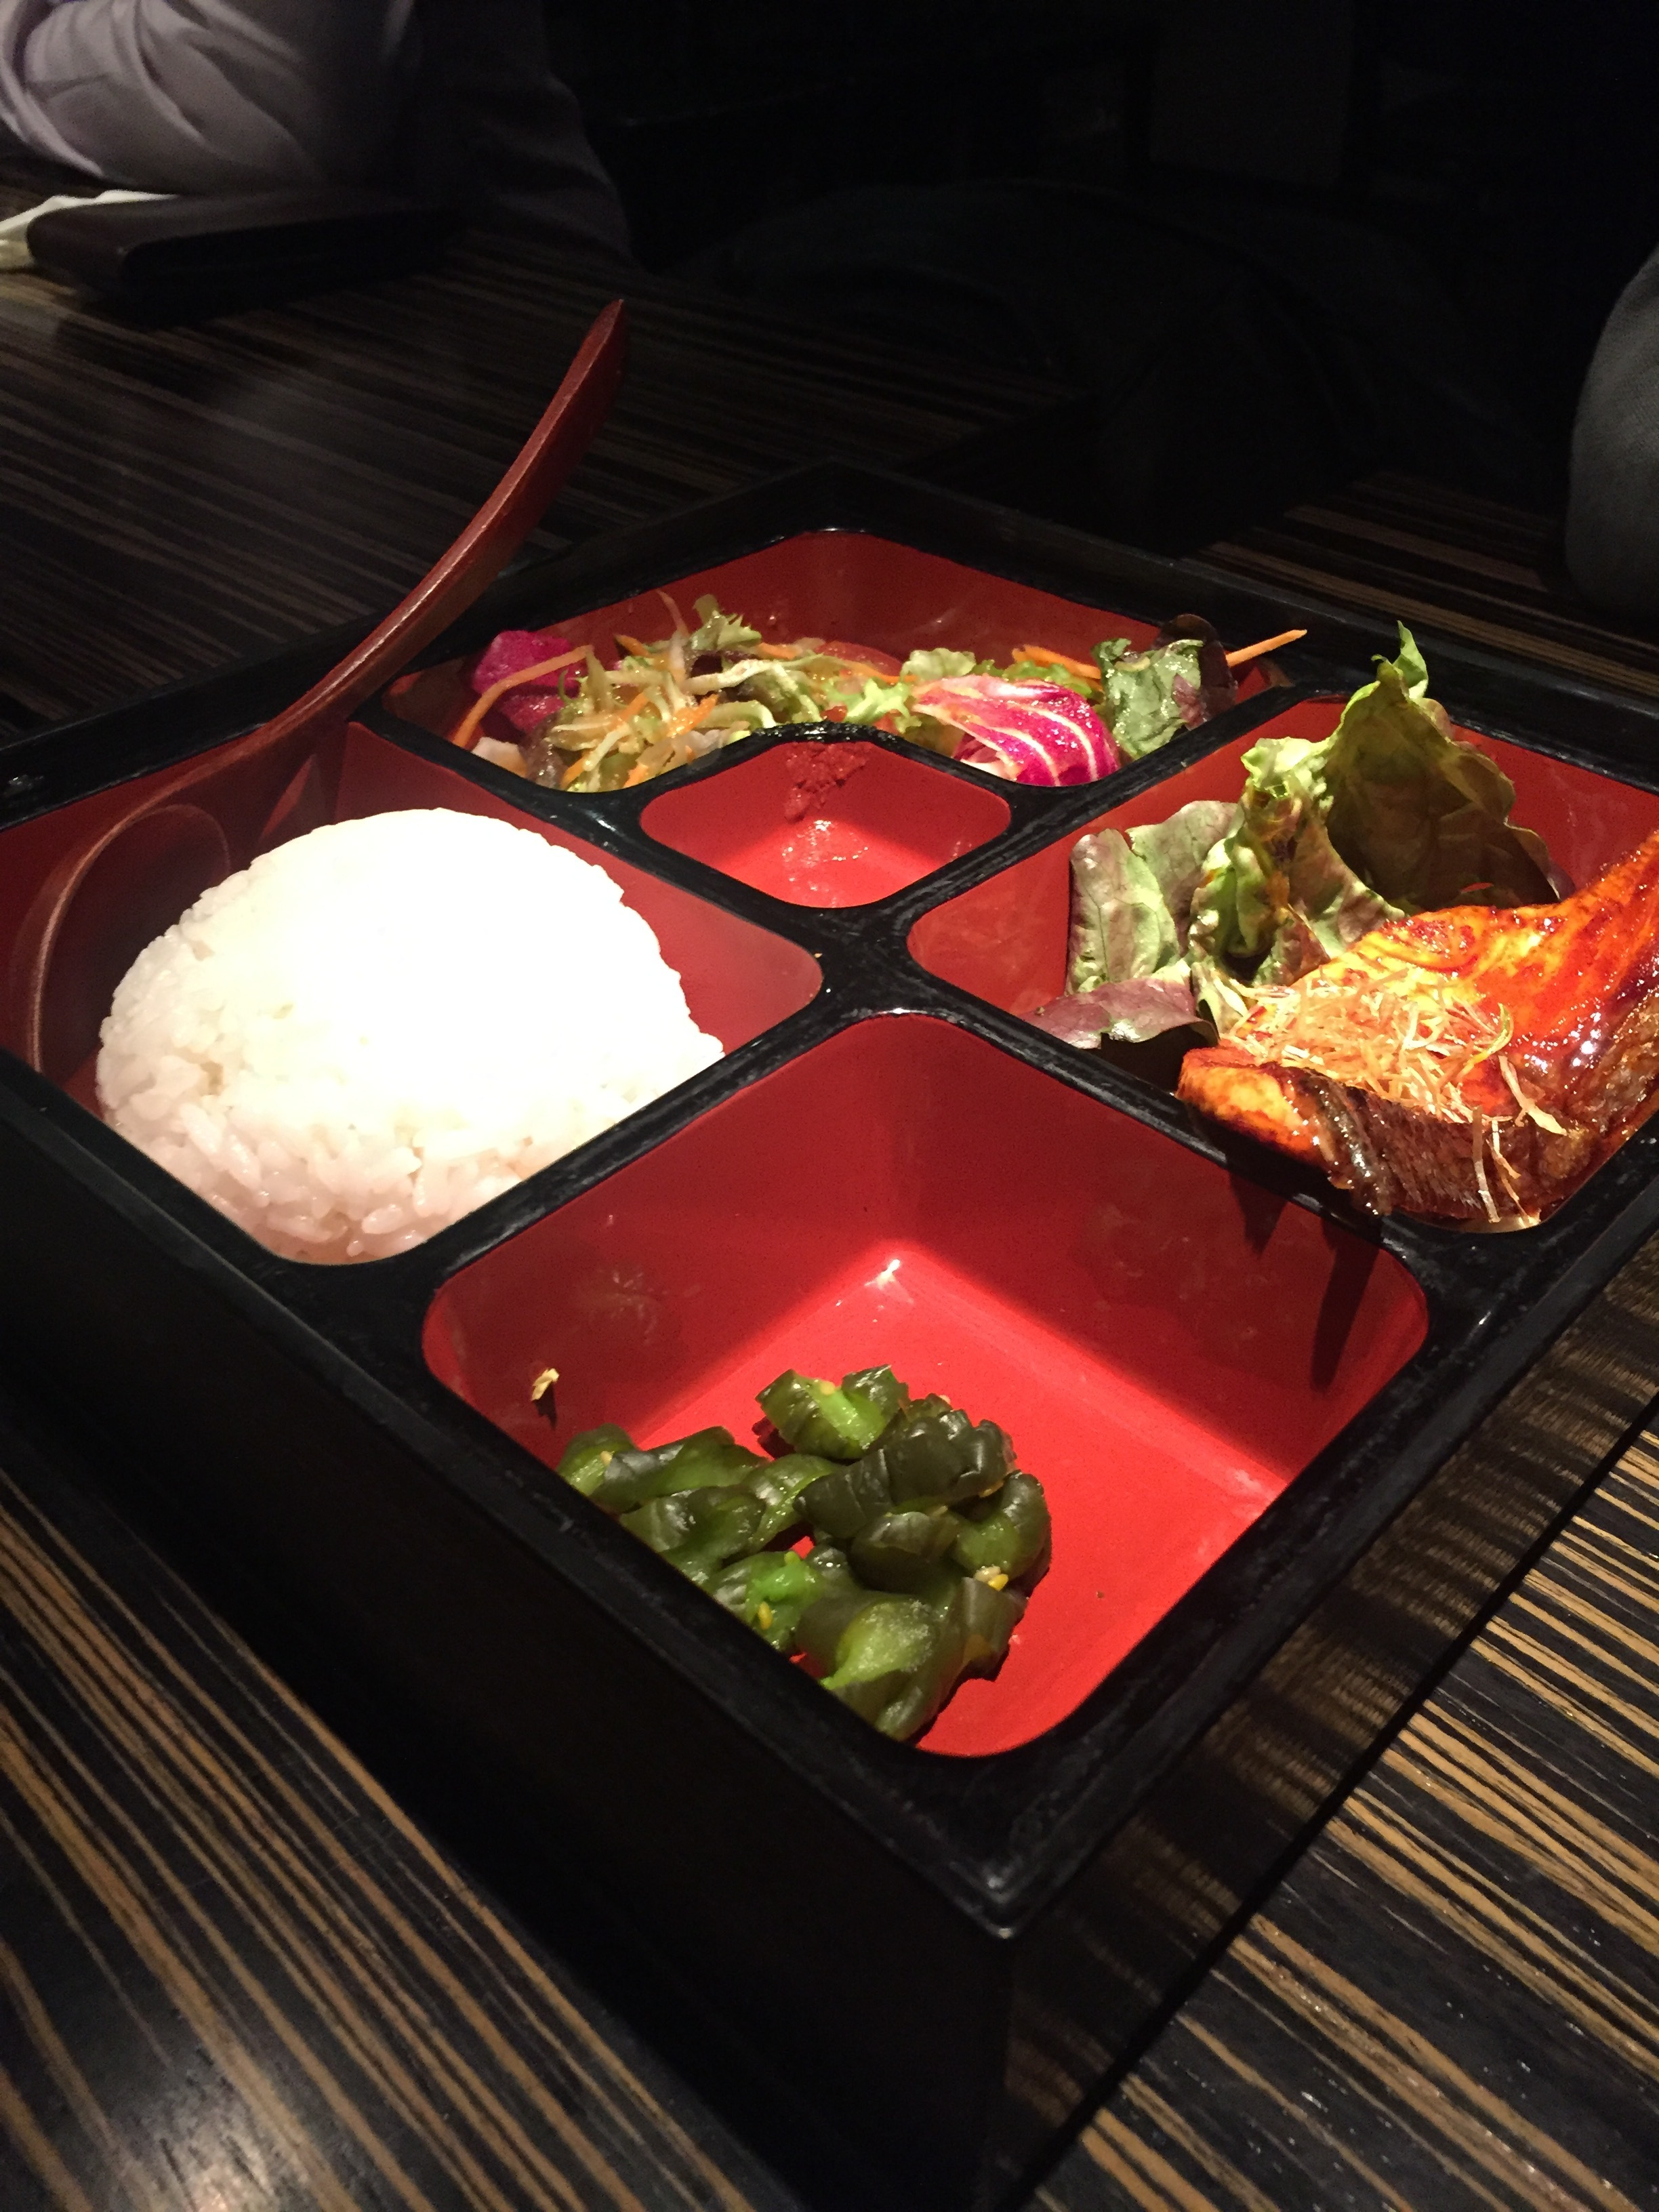 Sorry we begun nibbling away at this Salmon Bento box before I took the picture so it looks a bit sparse!